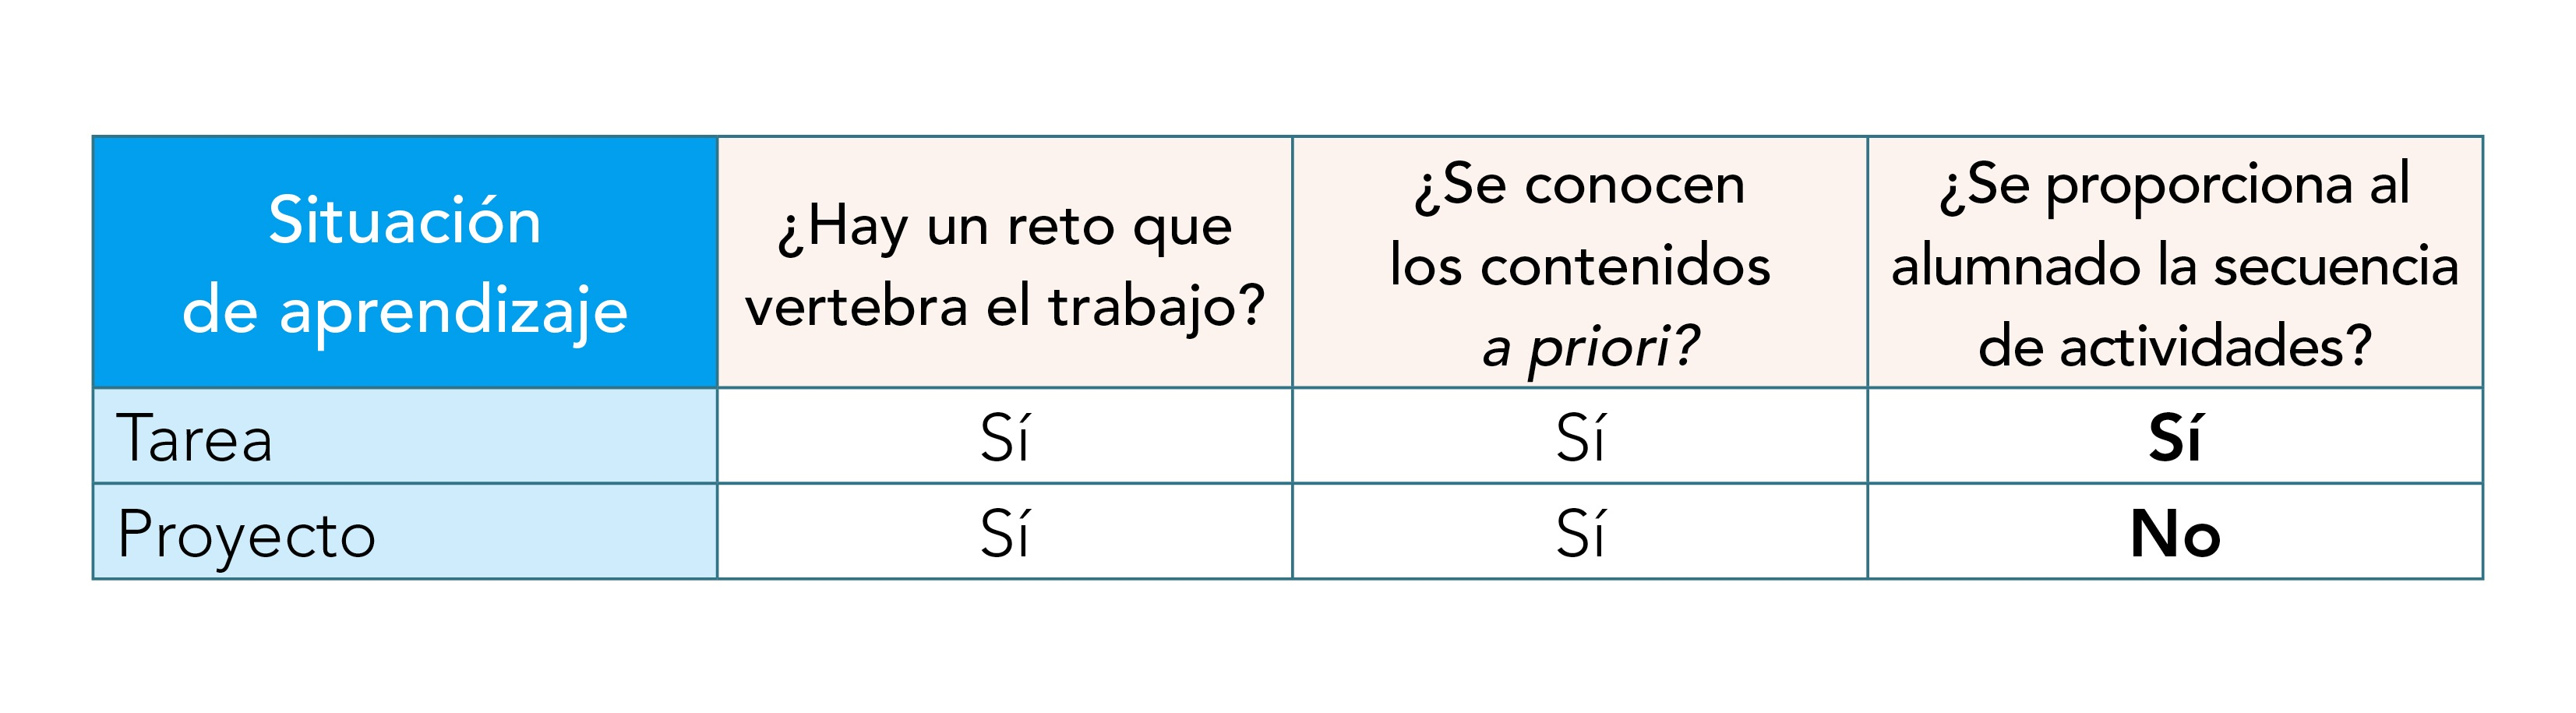 REd4_Breves_Tarea_Proyecto